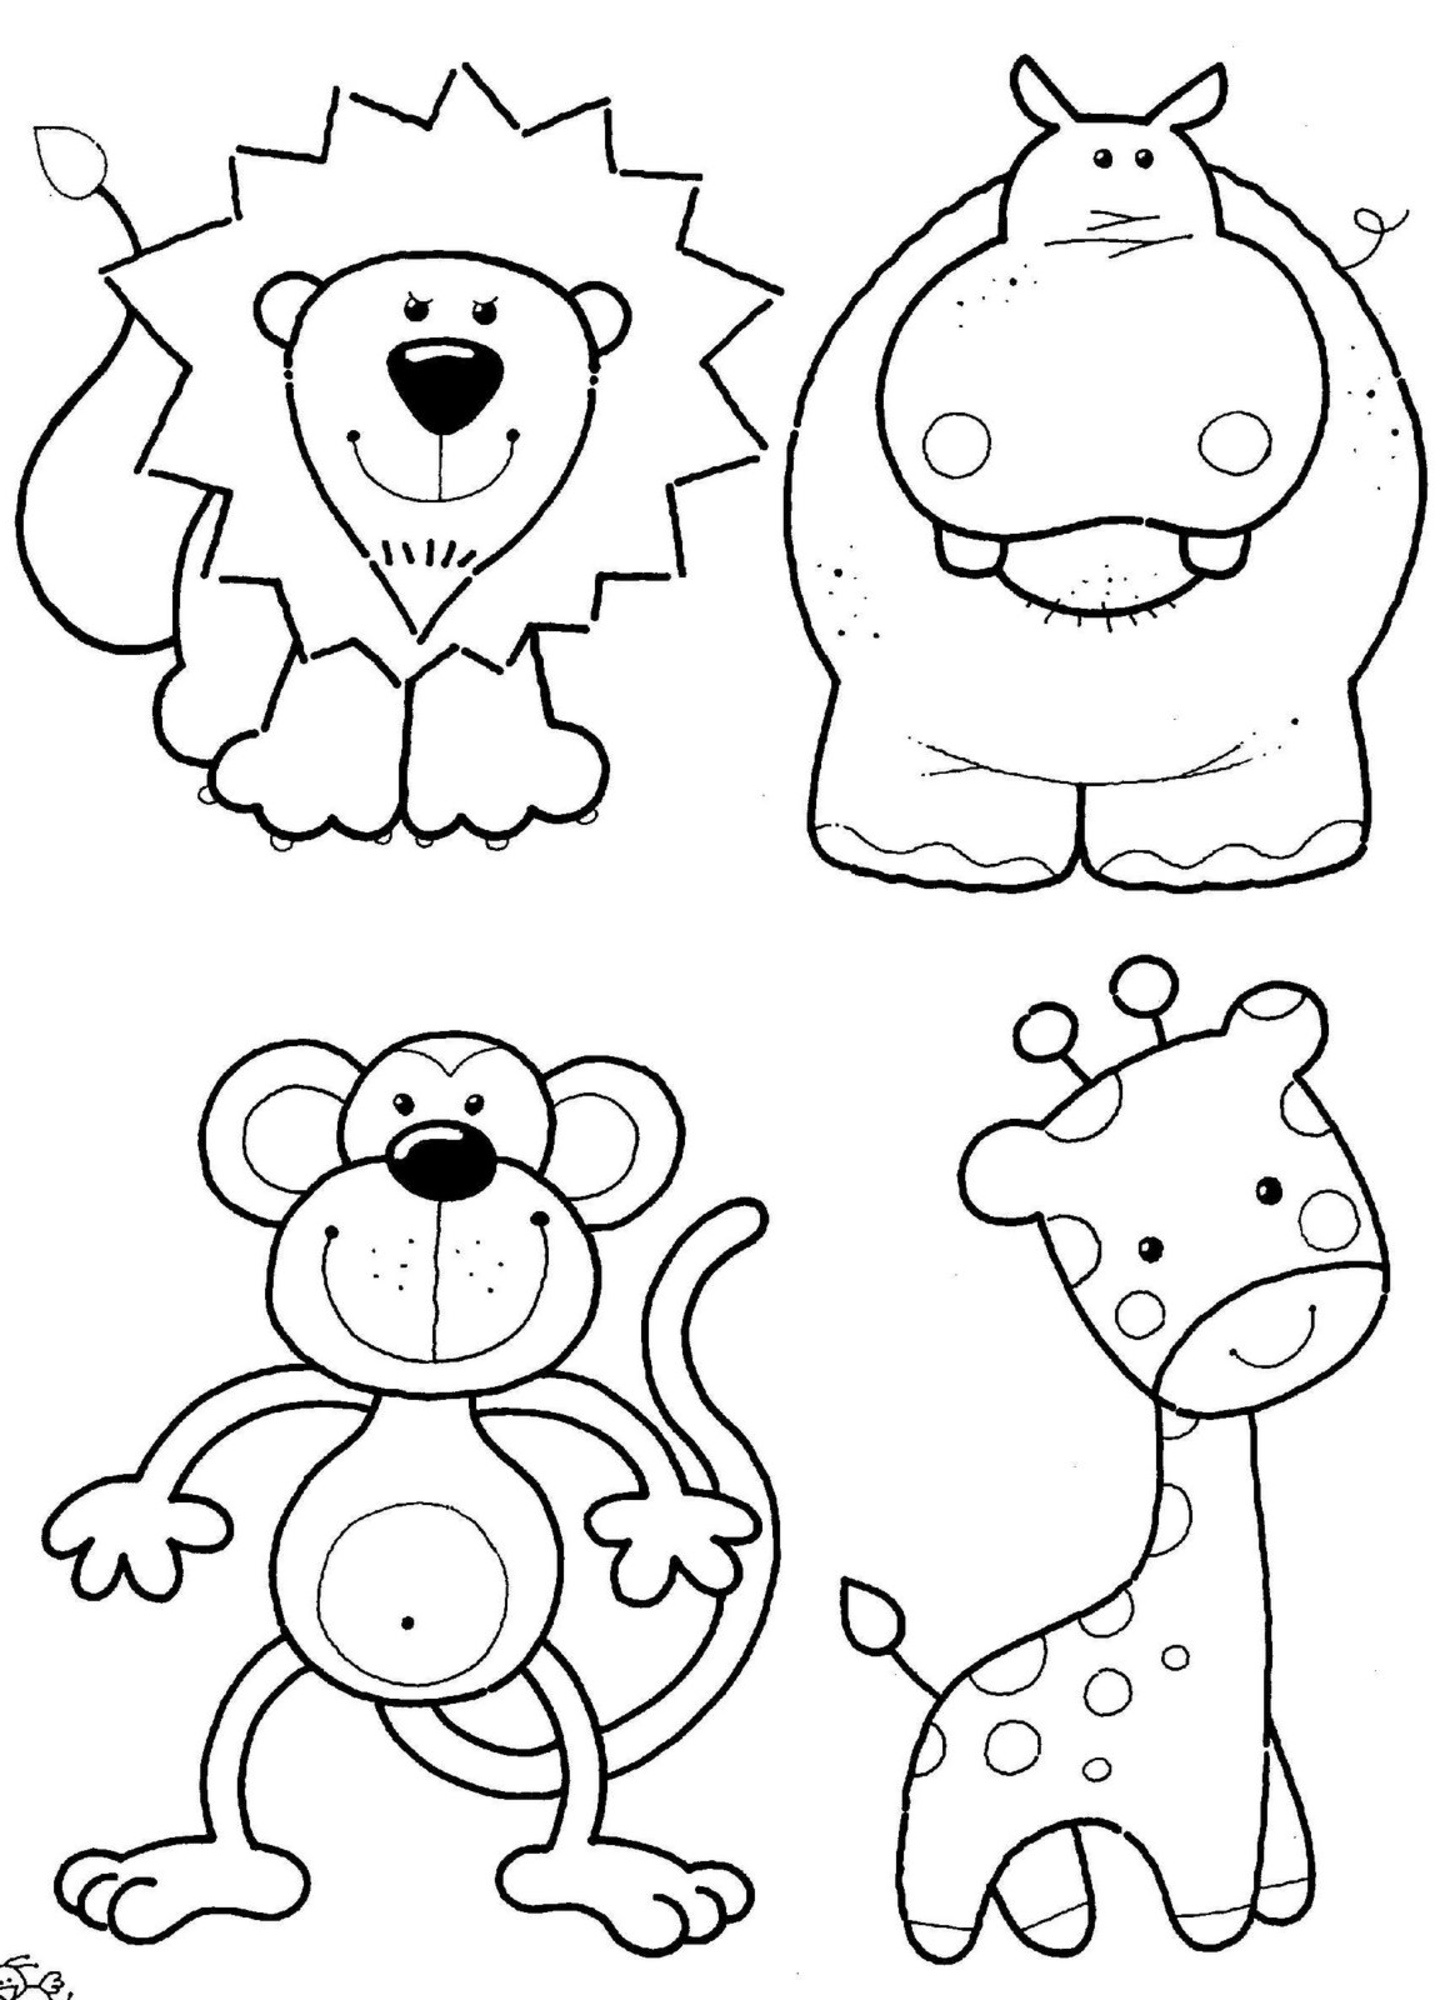 Zoo animals coloring pictures